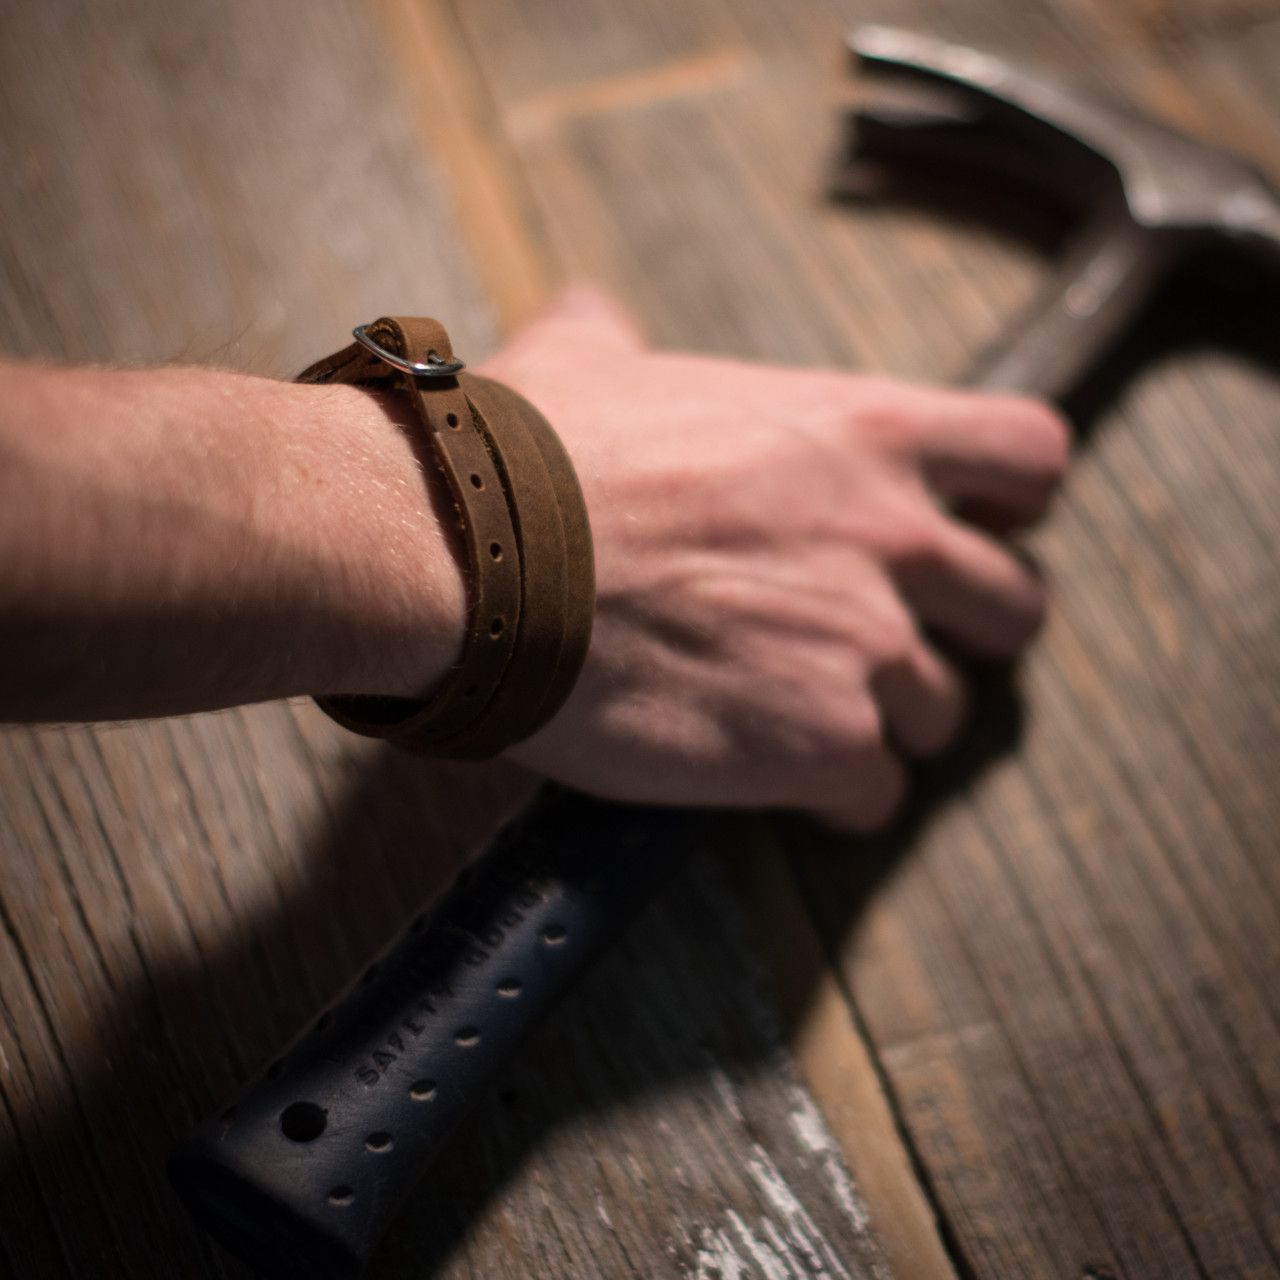 leather wrap bracelet in tobacco leather placed on hands holding a hammer